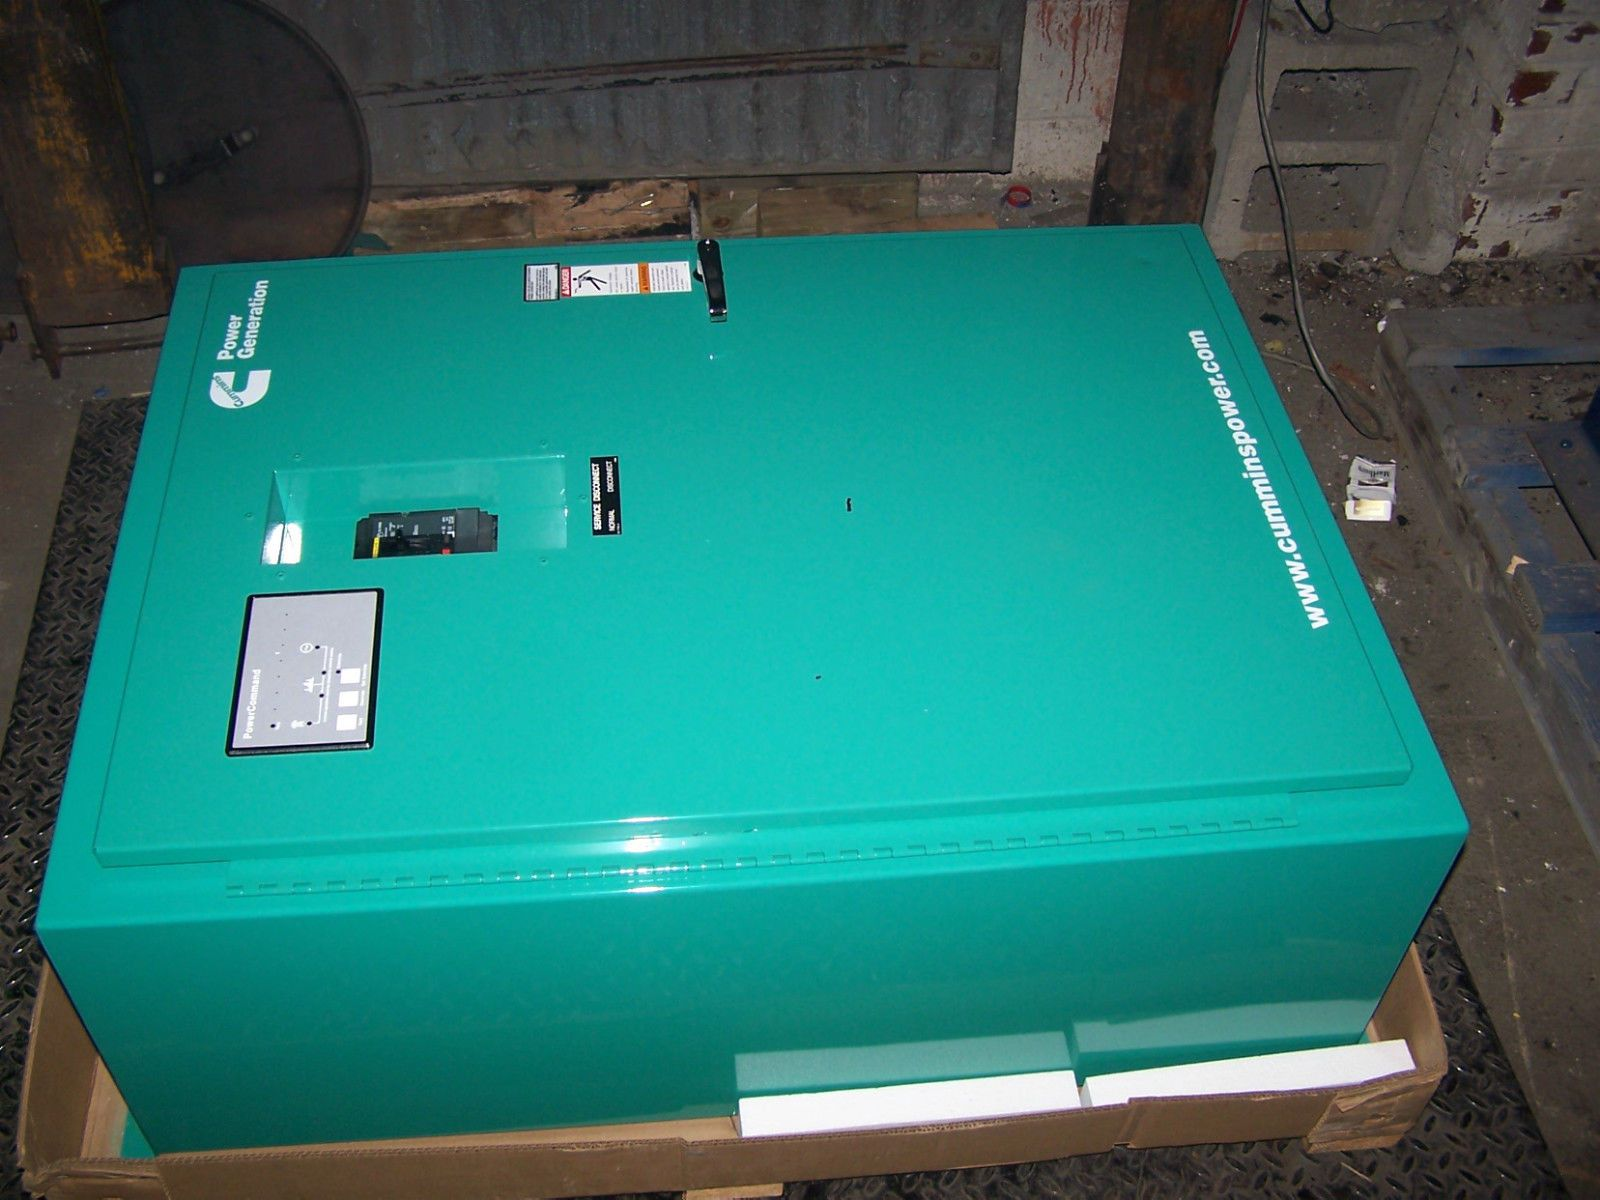 Power Generation Cummins Transfer Switch New Cummins 125 Amp Power Generation Automatic Transfer Switch 208 Vac Transfer Switch Cummins Vac